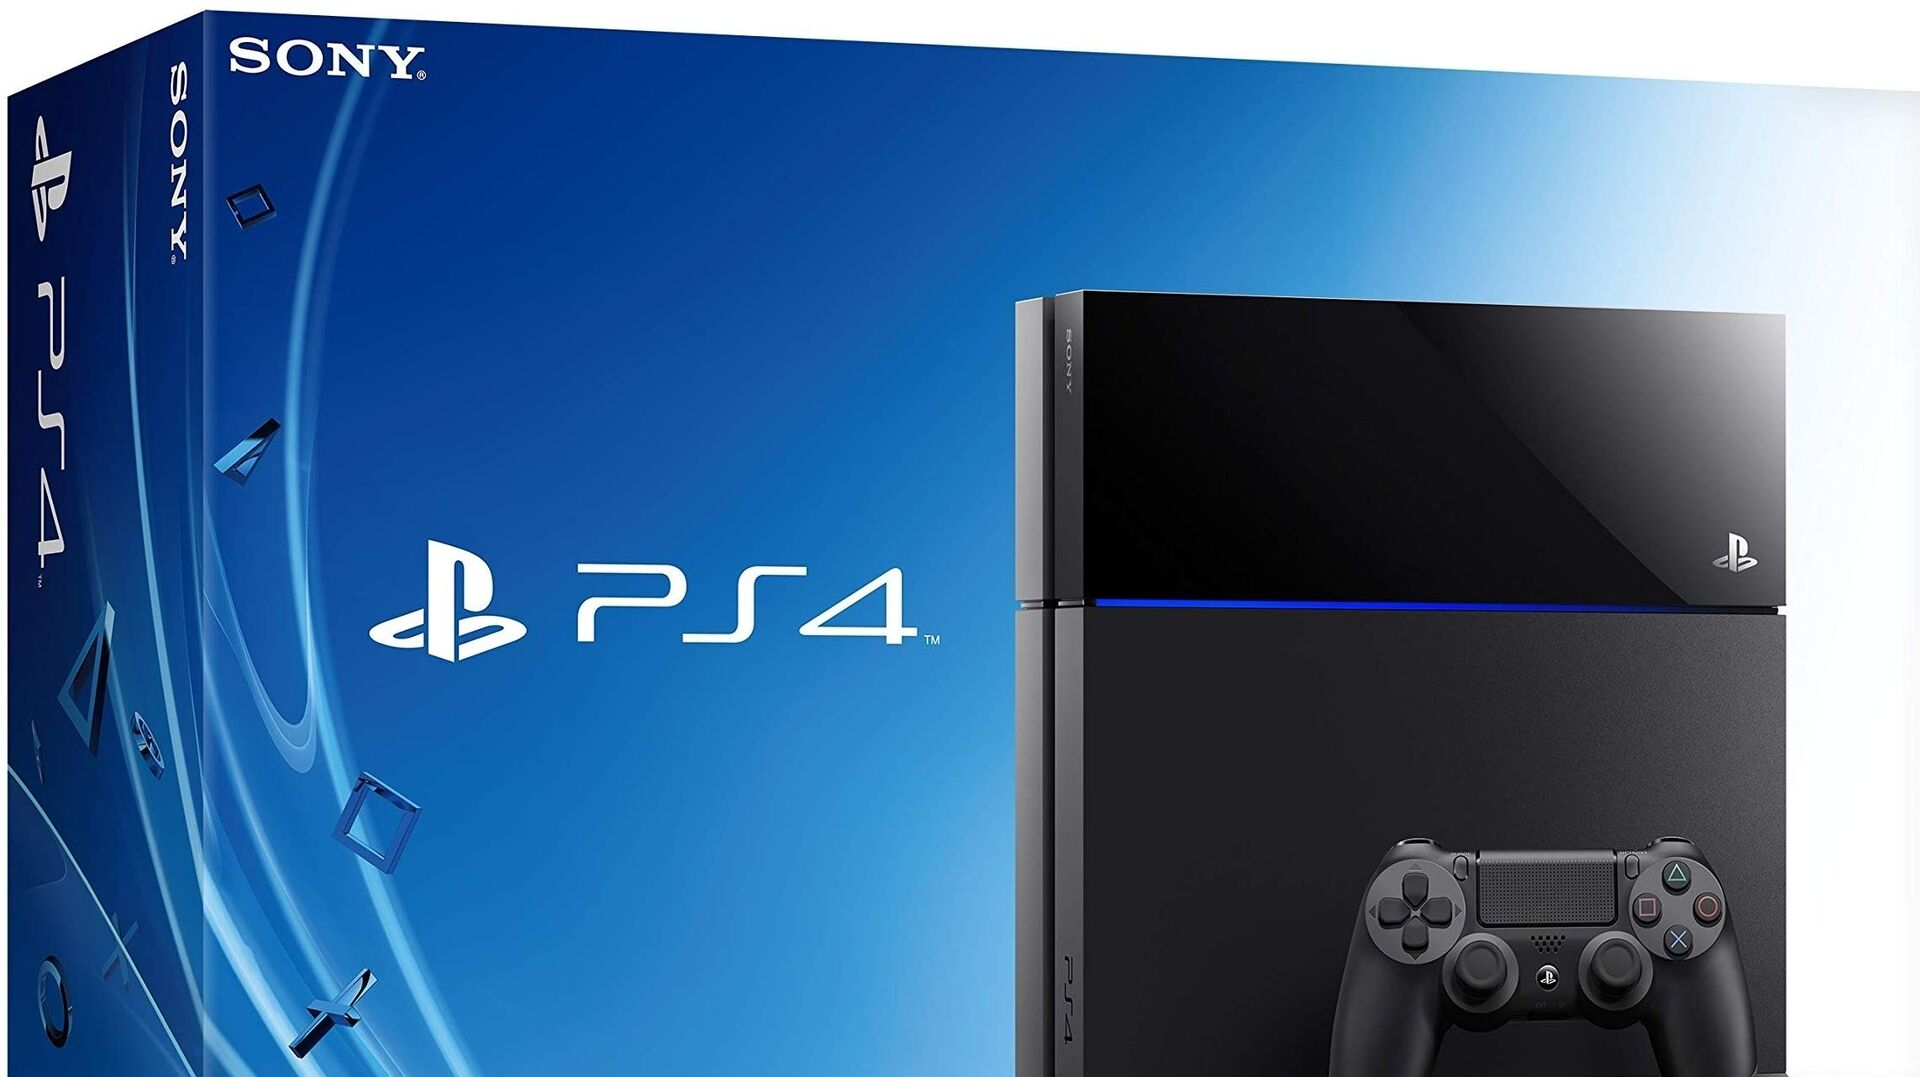 Playstation 4 2020 Christmas Sales PlayStation 4 had a good Christmas, but sales are slowing